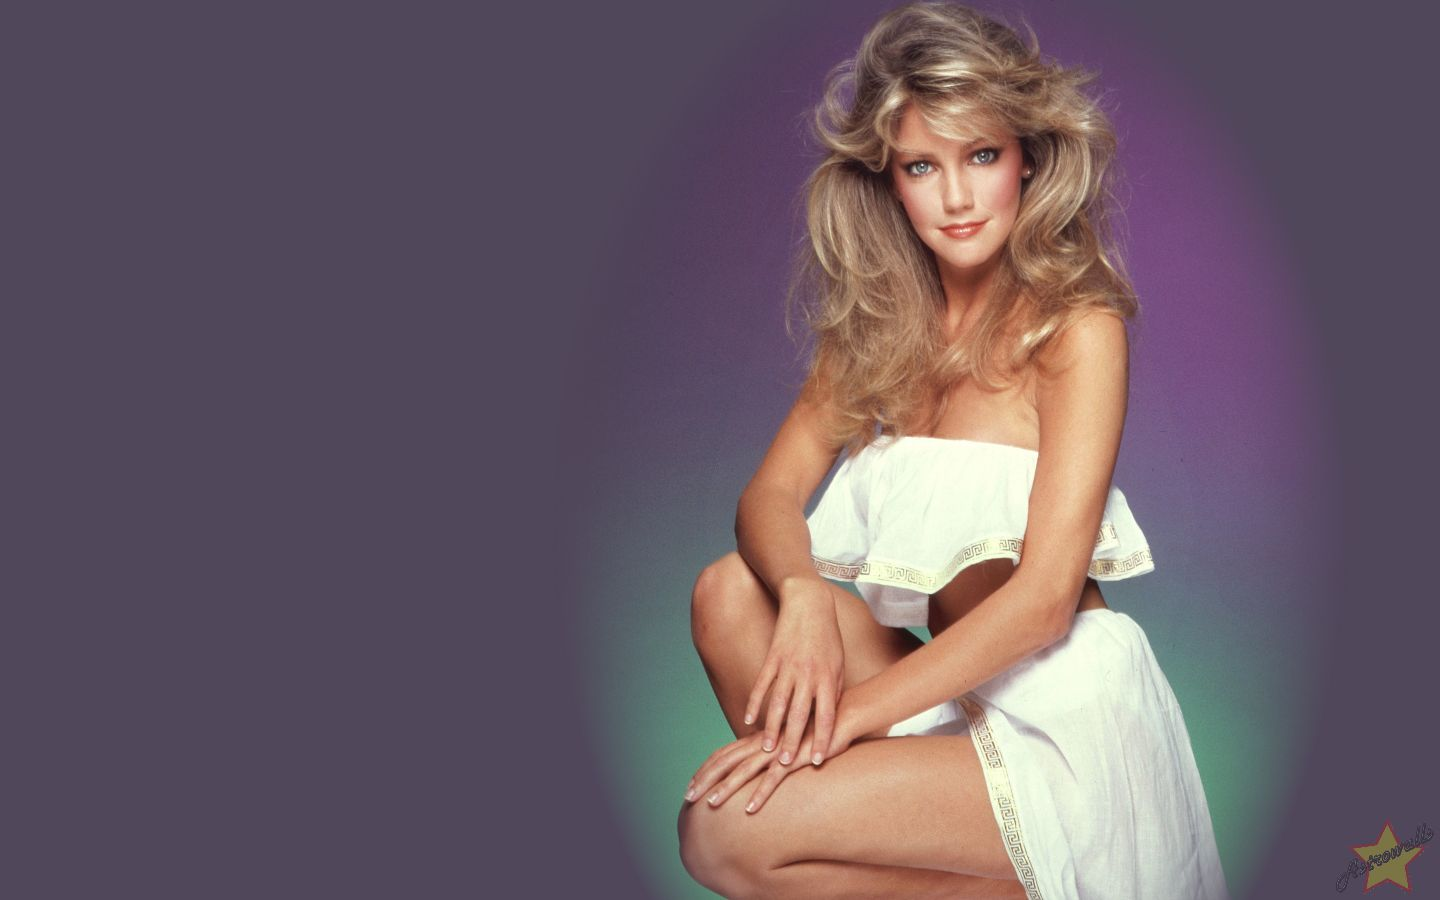 1440x900 - Heather Locklear Wallpapers 1